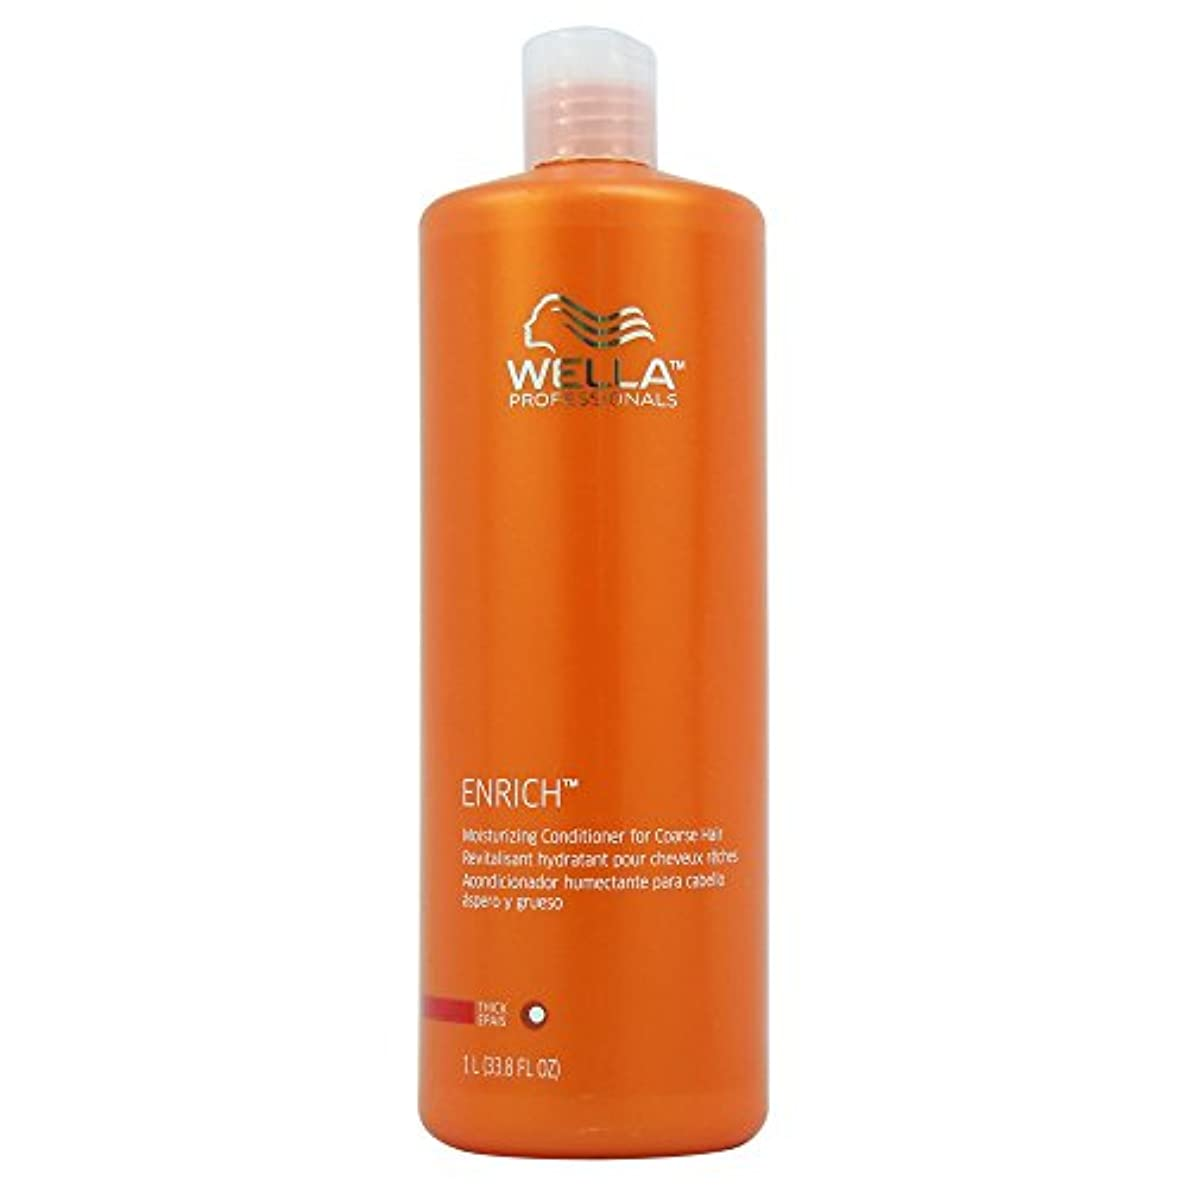 リッチ柱パーツWella Enriched Moisturizing Conditioner for Coarse Hair for Unisex, 33.8 Ounce by Wella